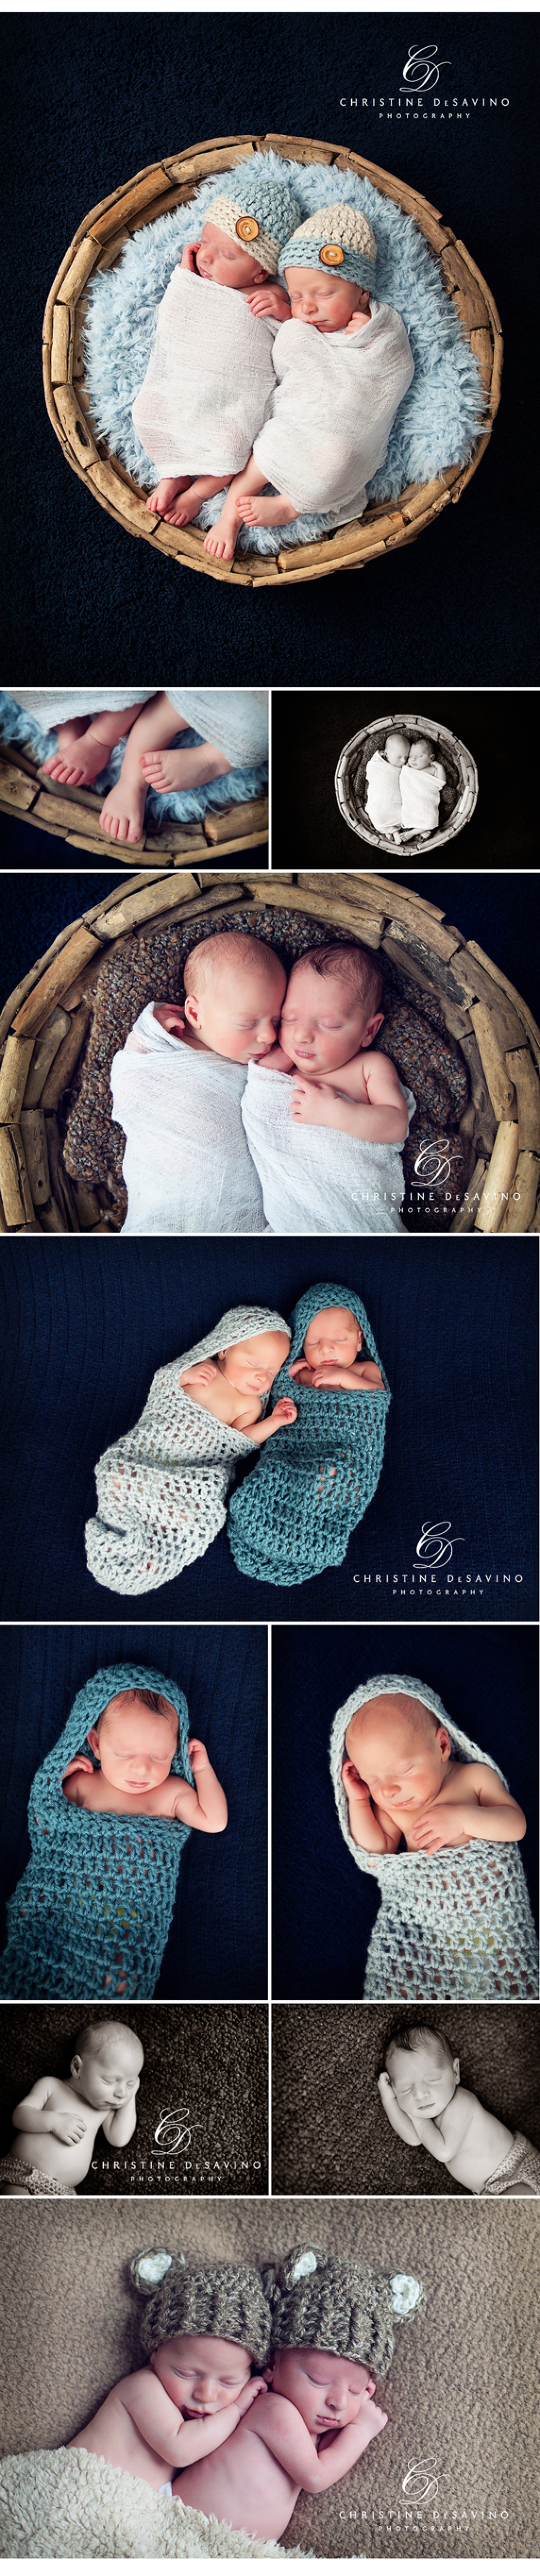 NJ Newborn Twin Photographer ~ Christine DeSavino Photography